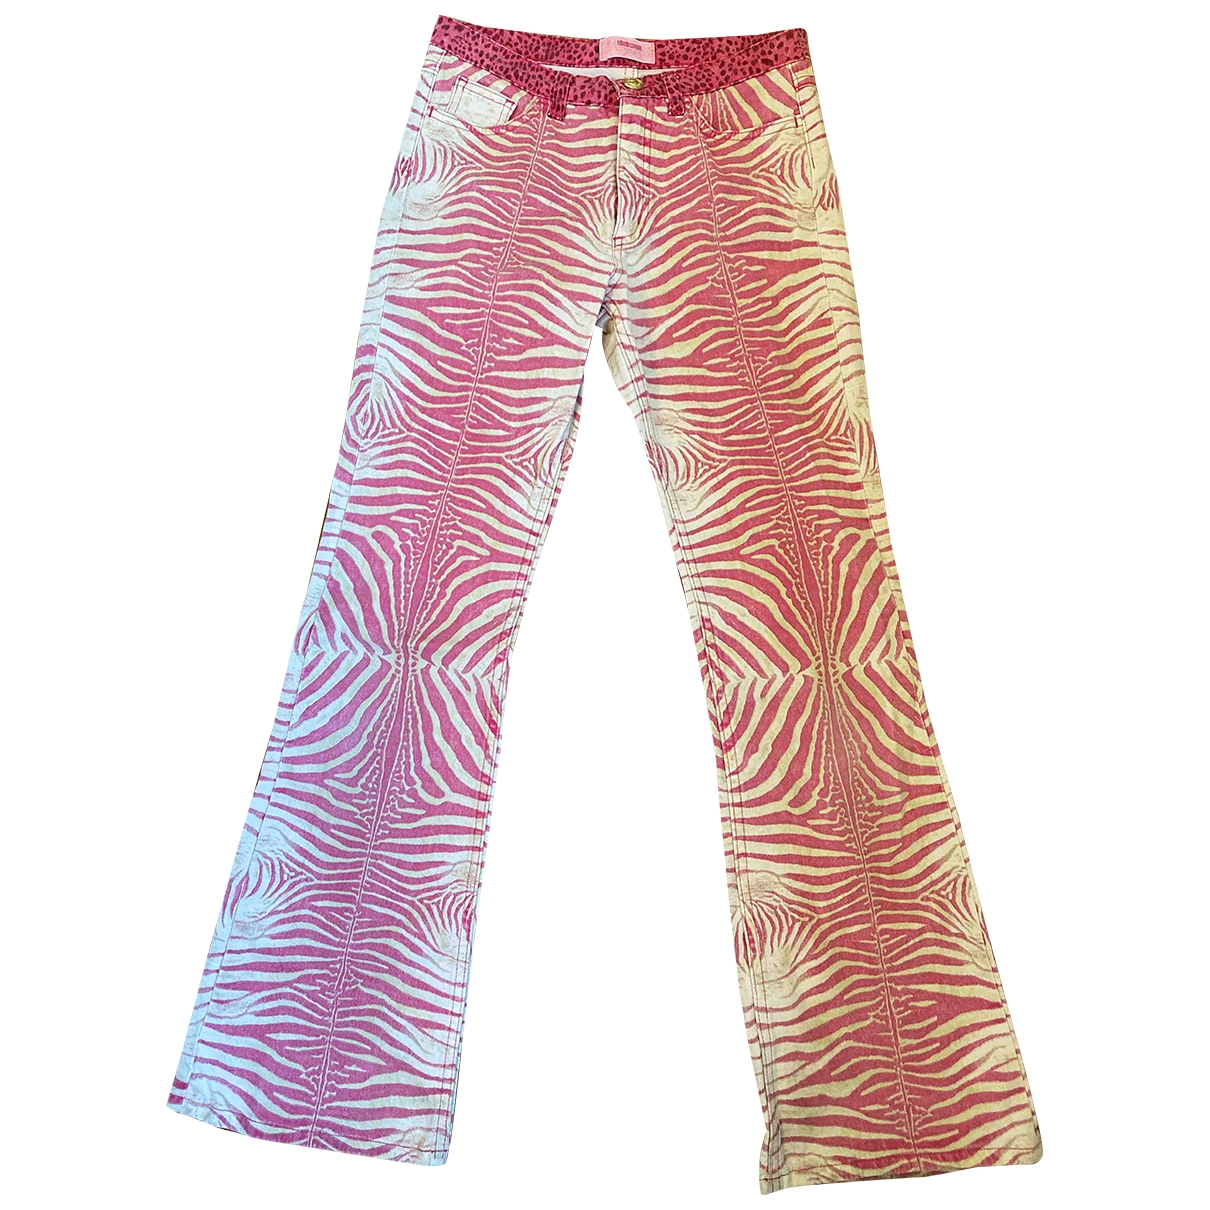 Roberto Cavalli \N Pink Cotton Trousers for Kids 10 years - until 56 inches UK